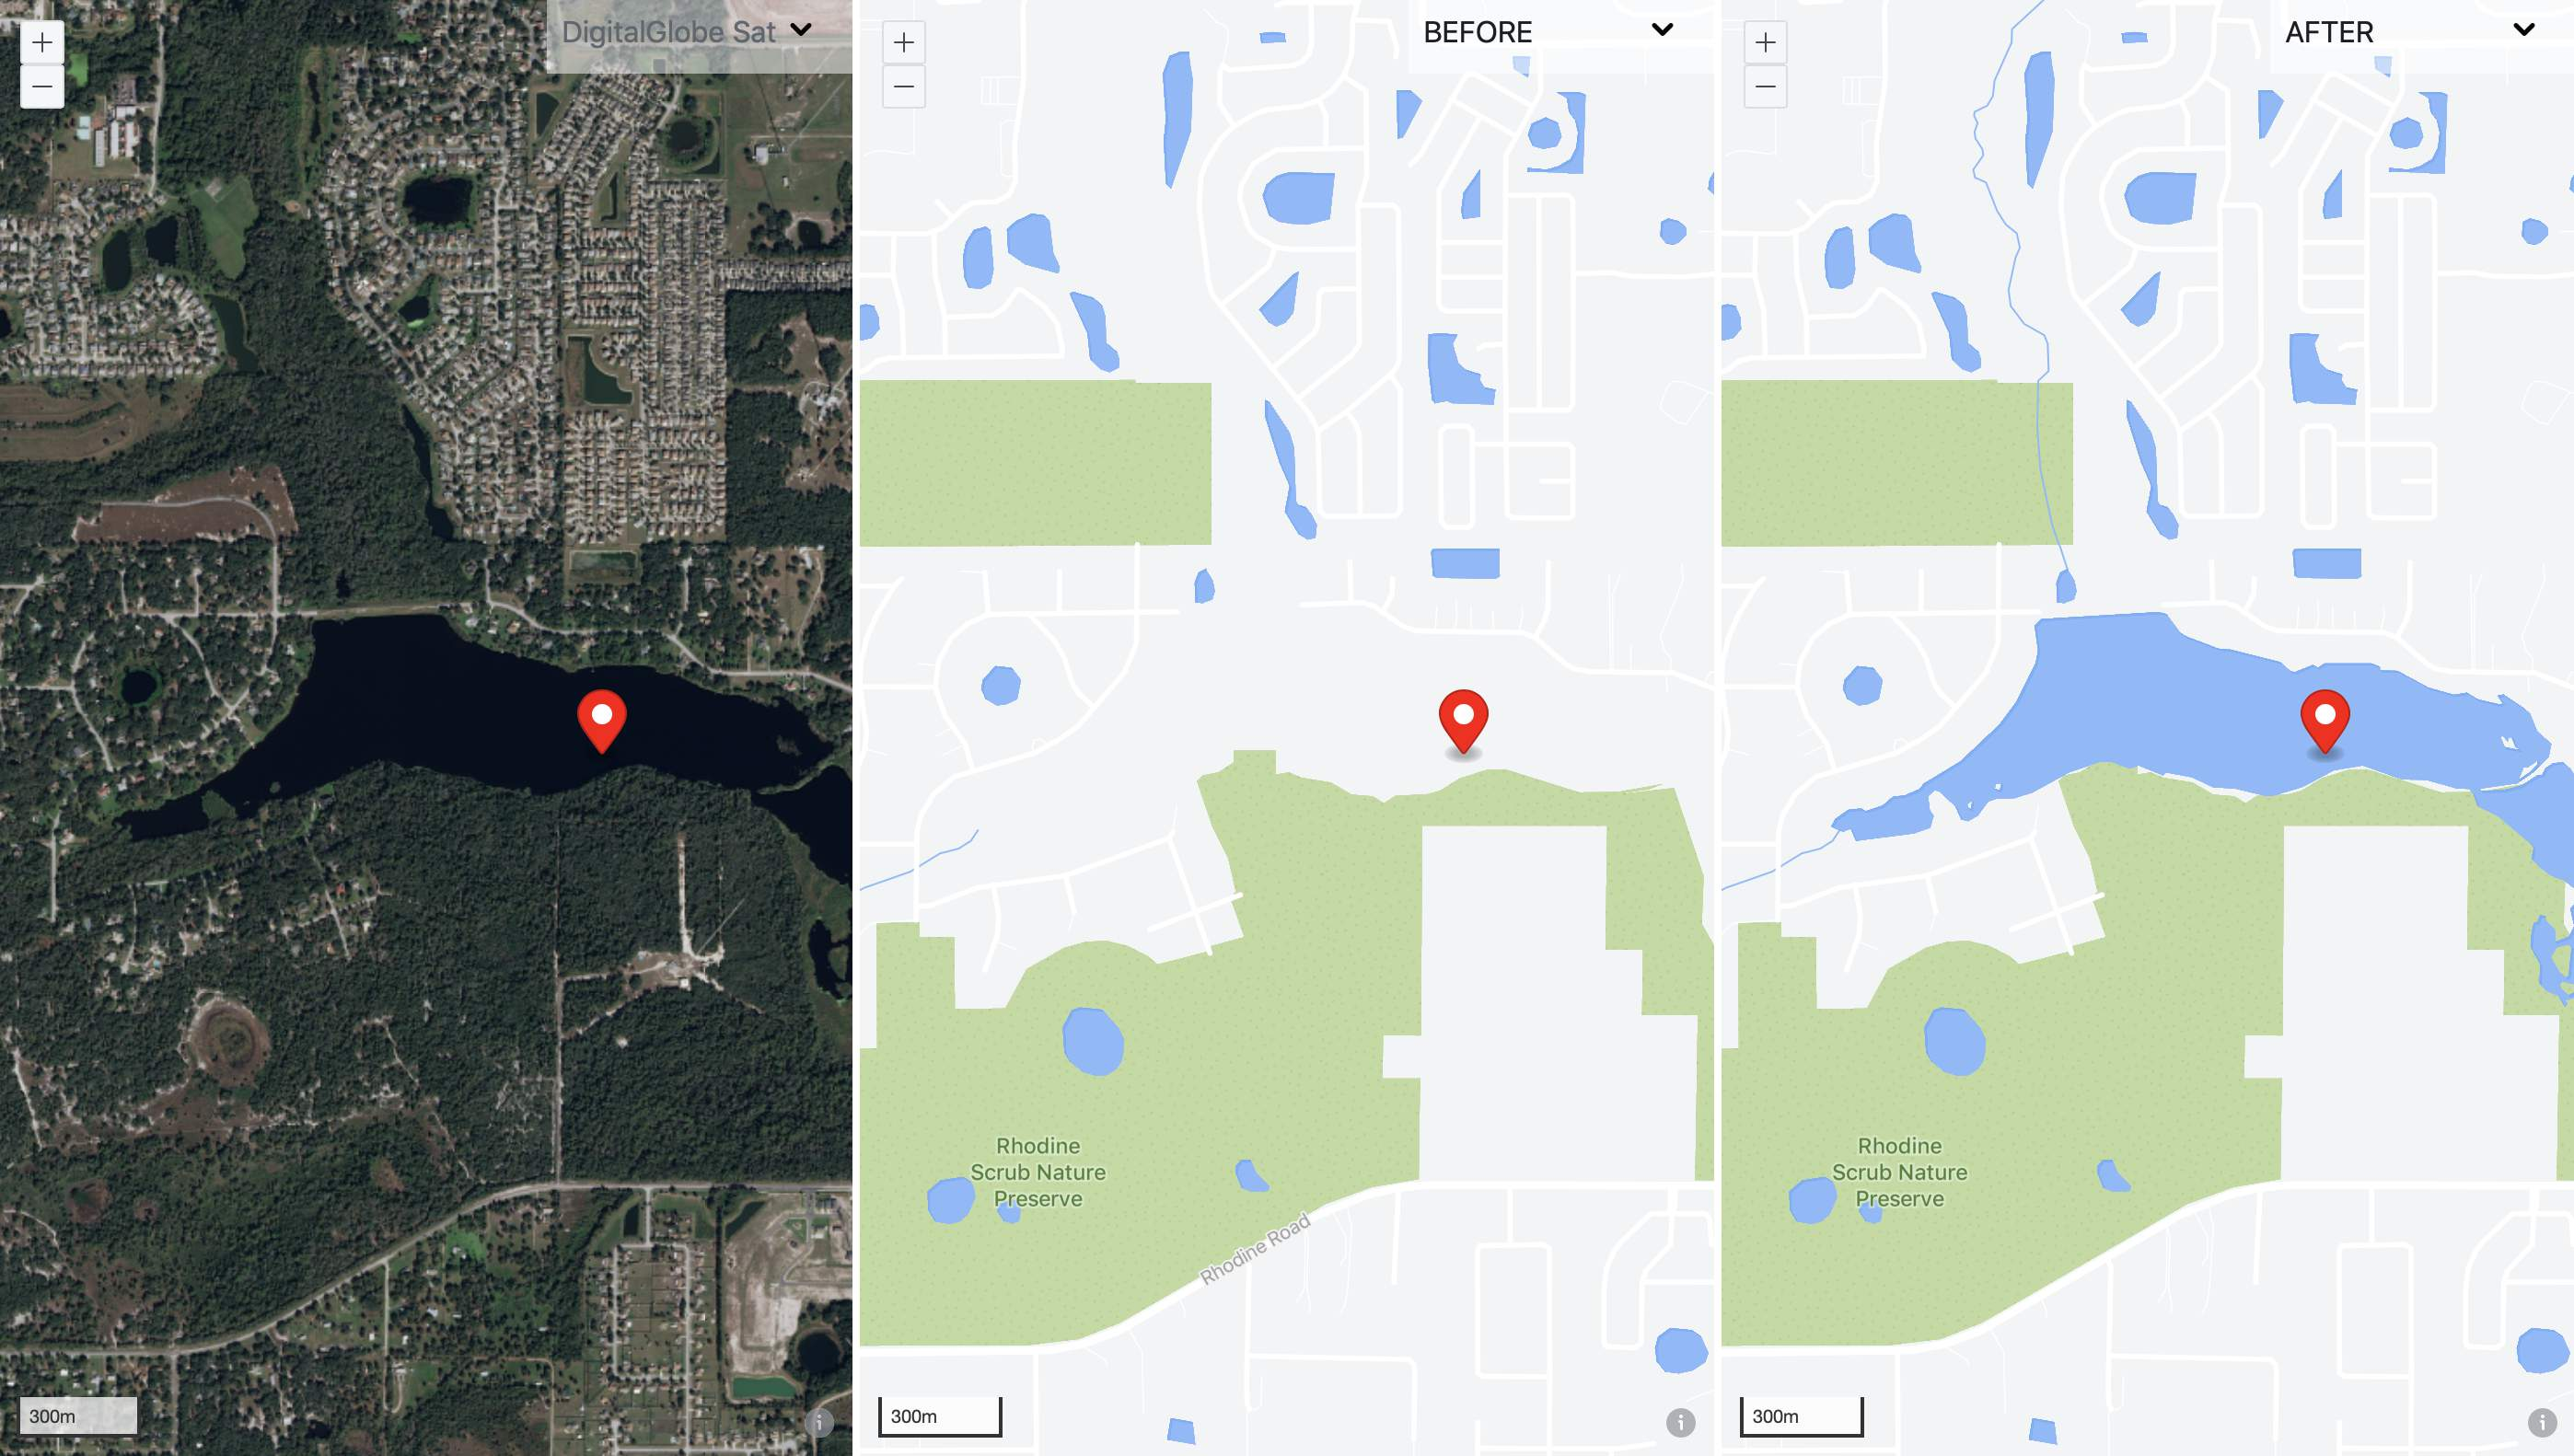 Found missing water body in Florida